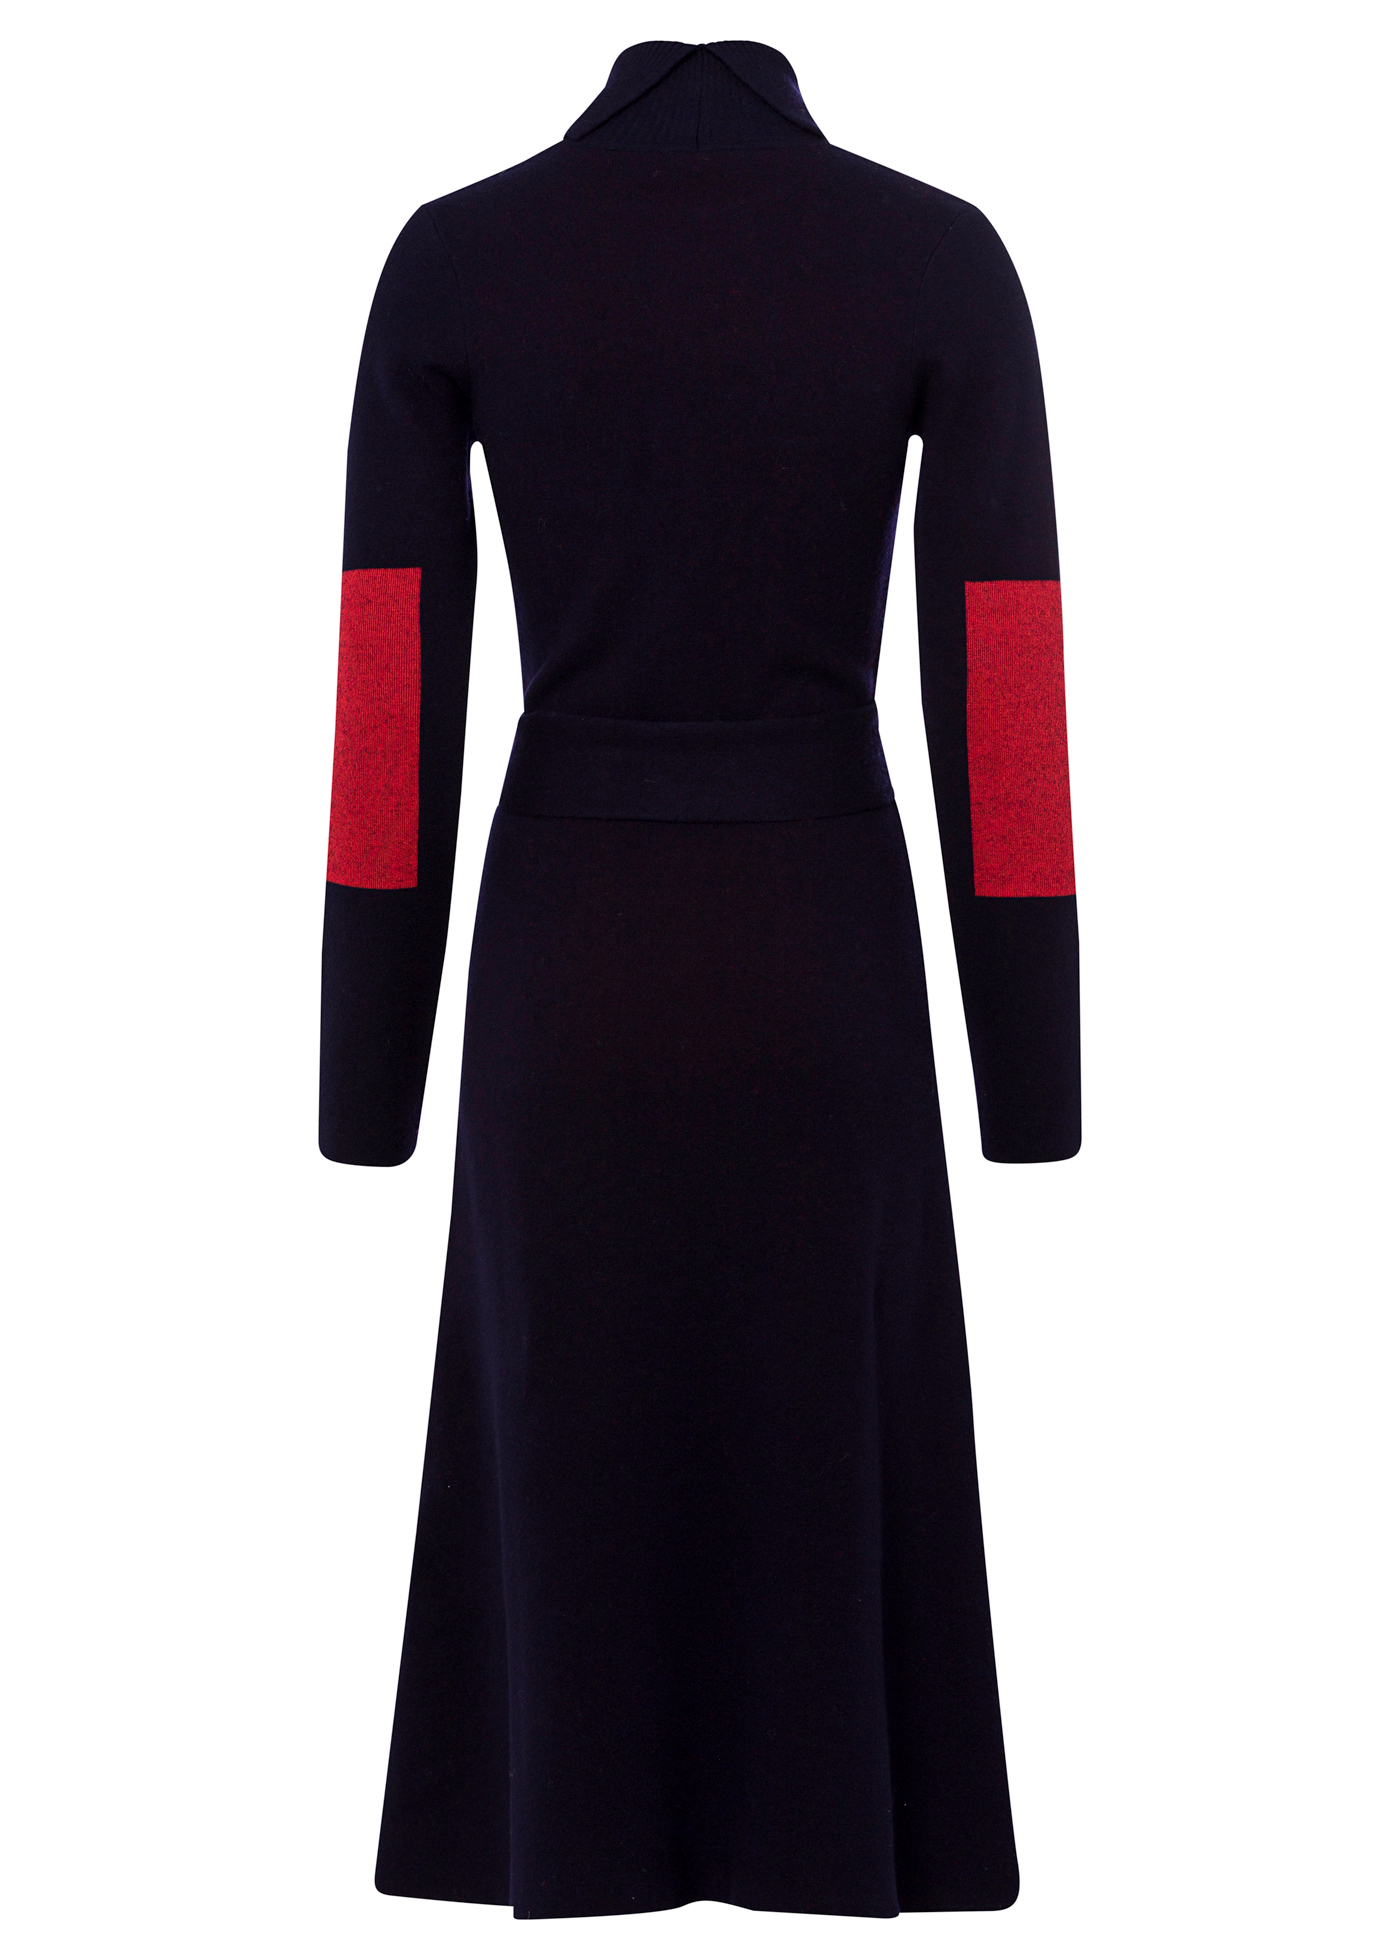 WASHED DOUBLE FACE FIT AND FLARE POLONECK DRESS image number 1